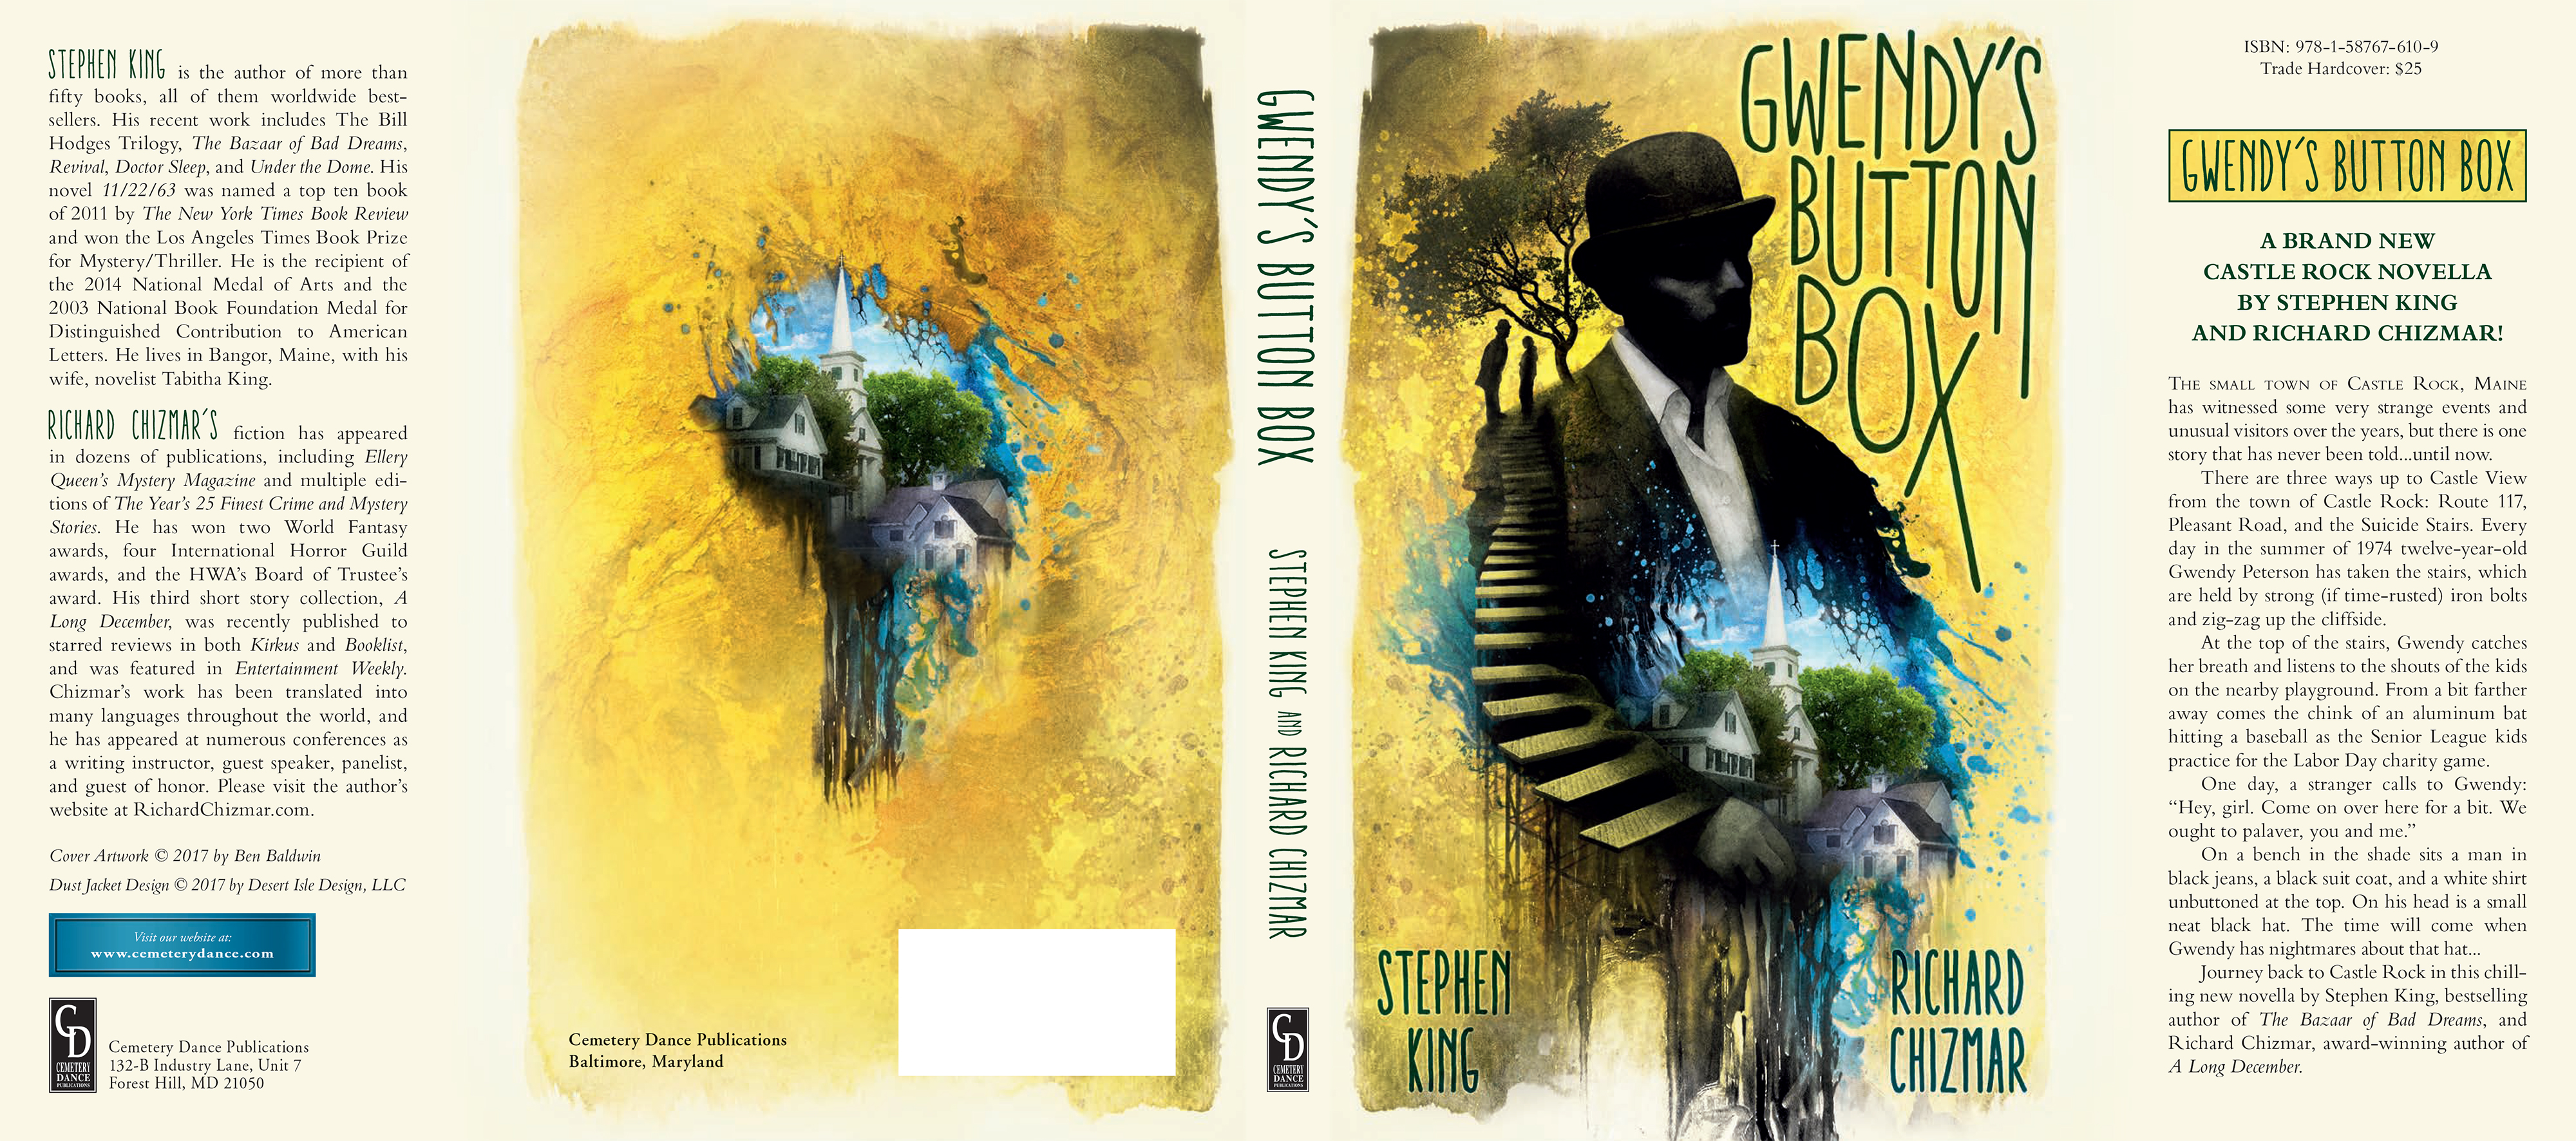 [gwendys button box stephenking richard chizmar fullcover]